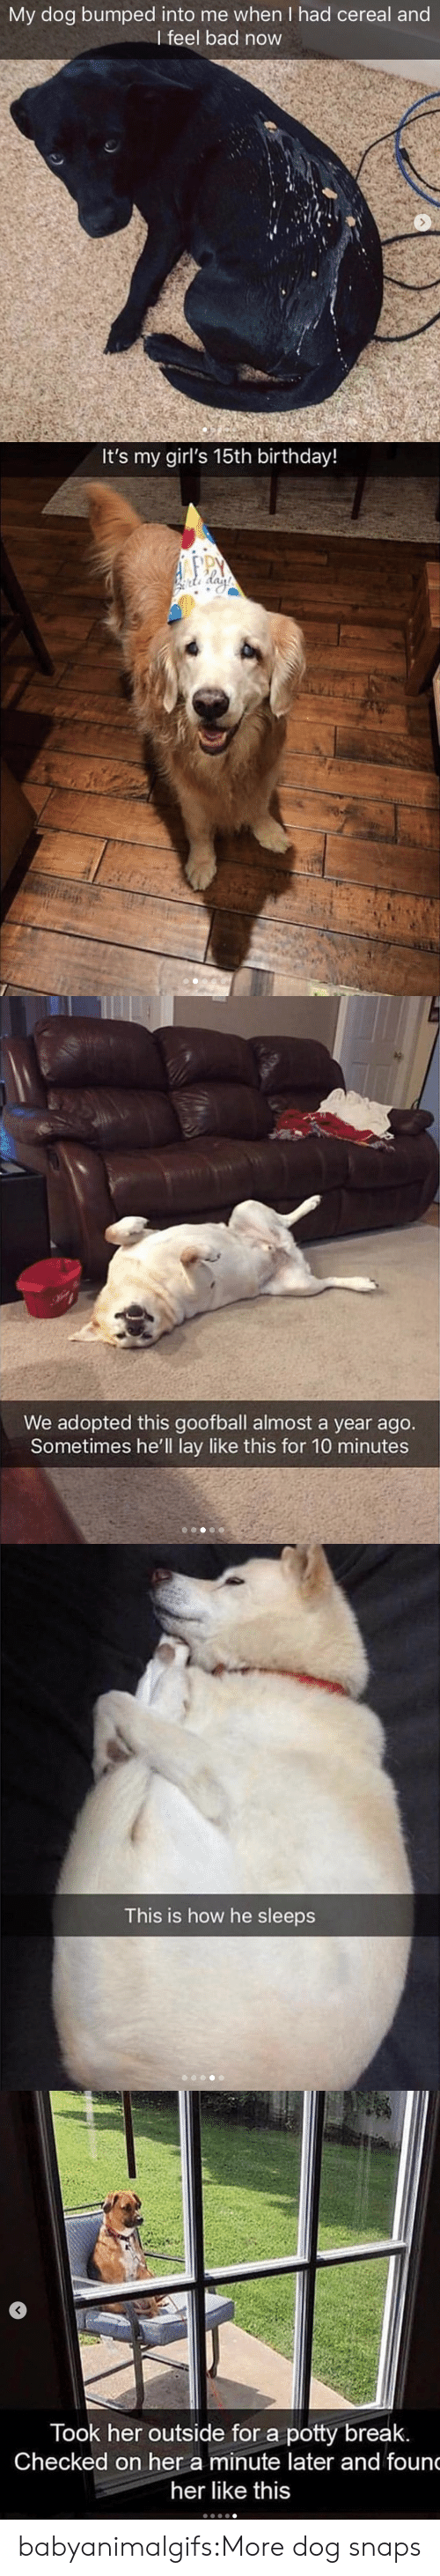 Bad, Birthday, and Girls: My dog bumped into me when I had cereal and  I feel bad now   It's my girl's 15th birthday!   We adopted this goofball almost a year ago.  Sometimes he'll lay like this for 10 minutes   This is how he sleeps   Took her outside for a potty break  Checked on her a minute later and foun  her like this babyanimalgifs:More dog snaps